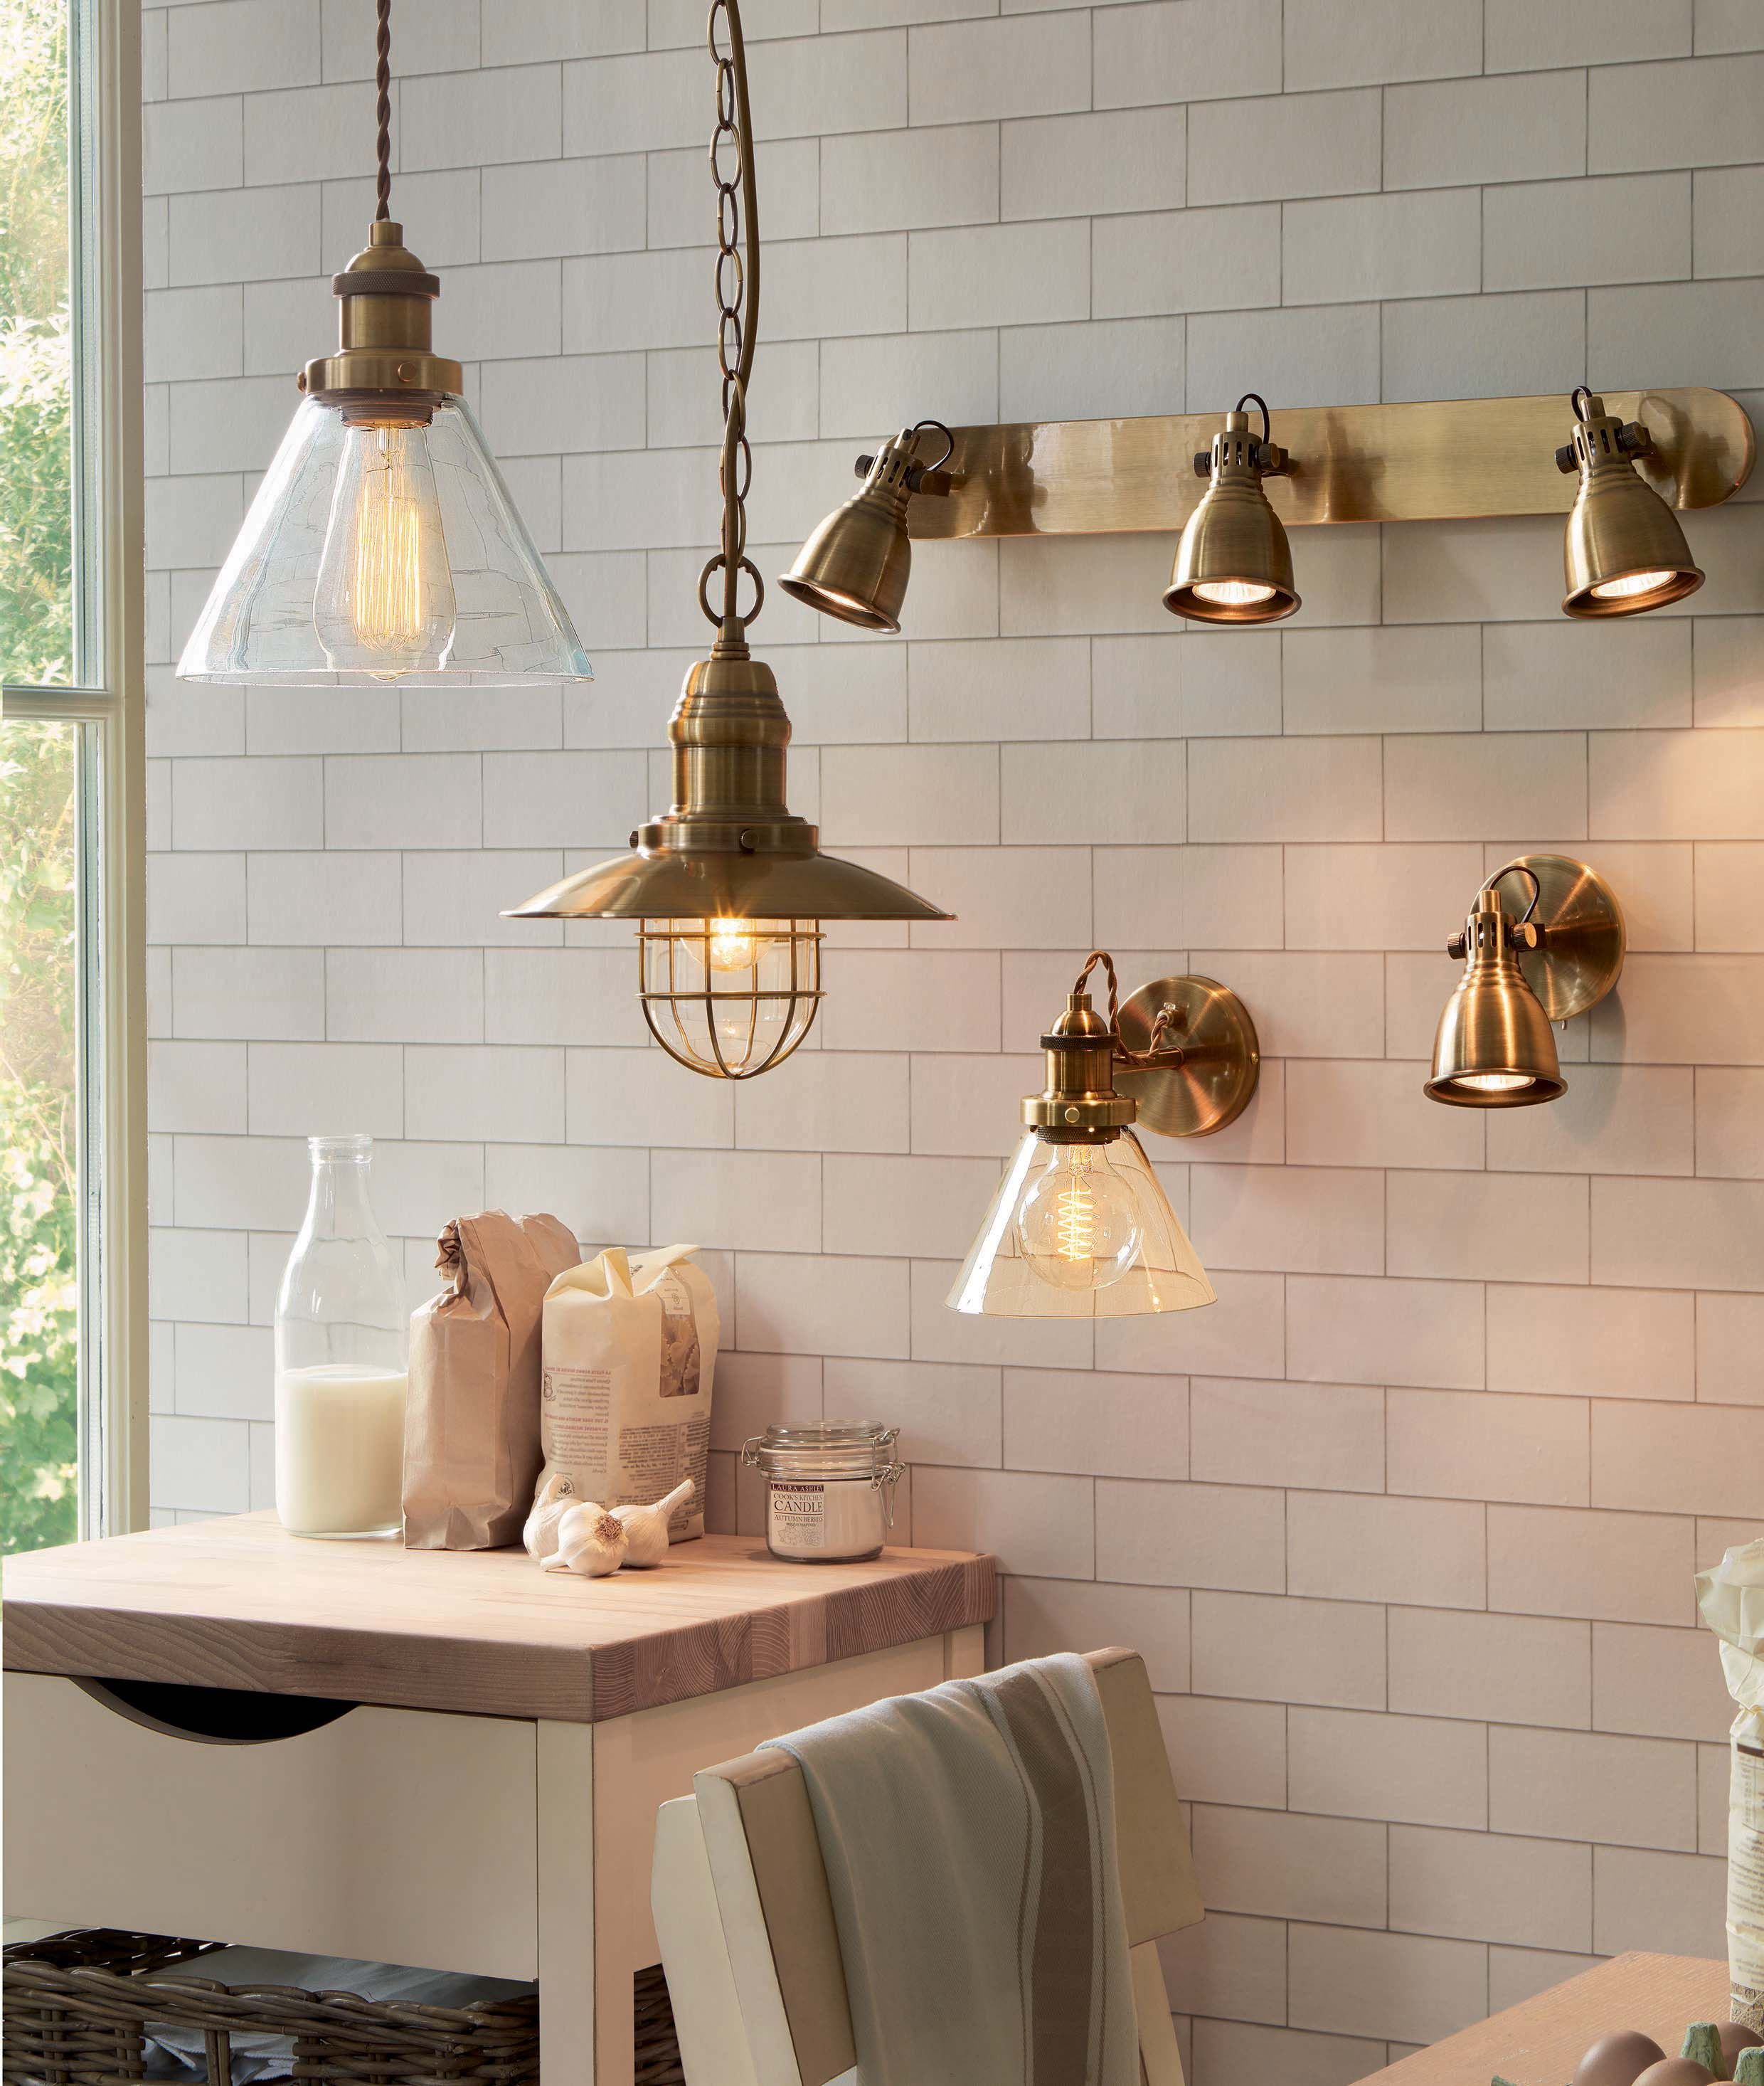 Laura Ashley Lighting Range | Lighting: Bright Buys ...